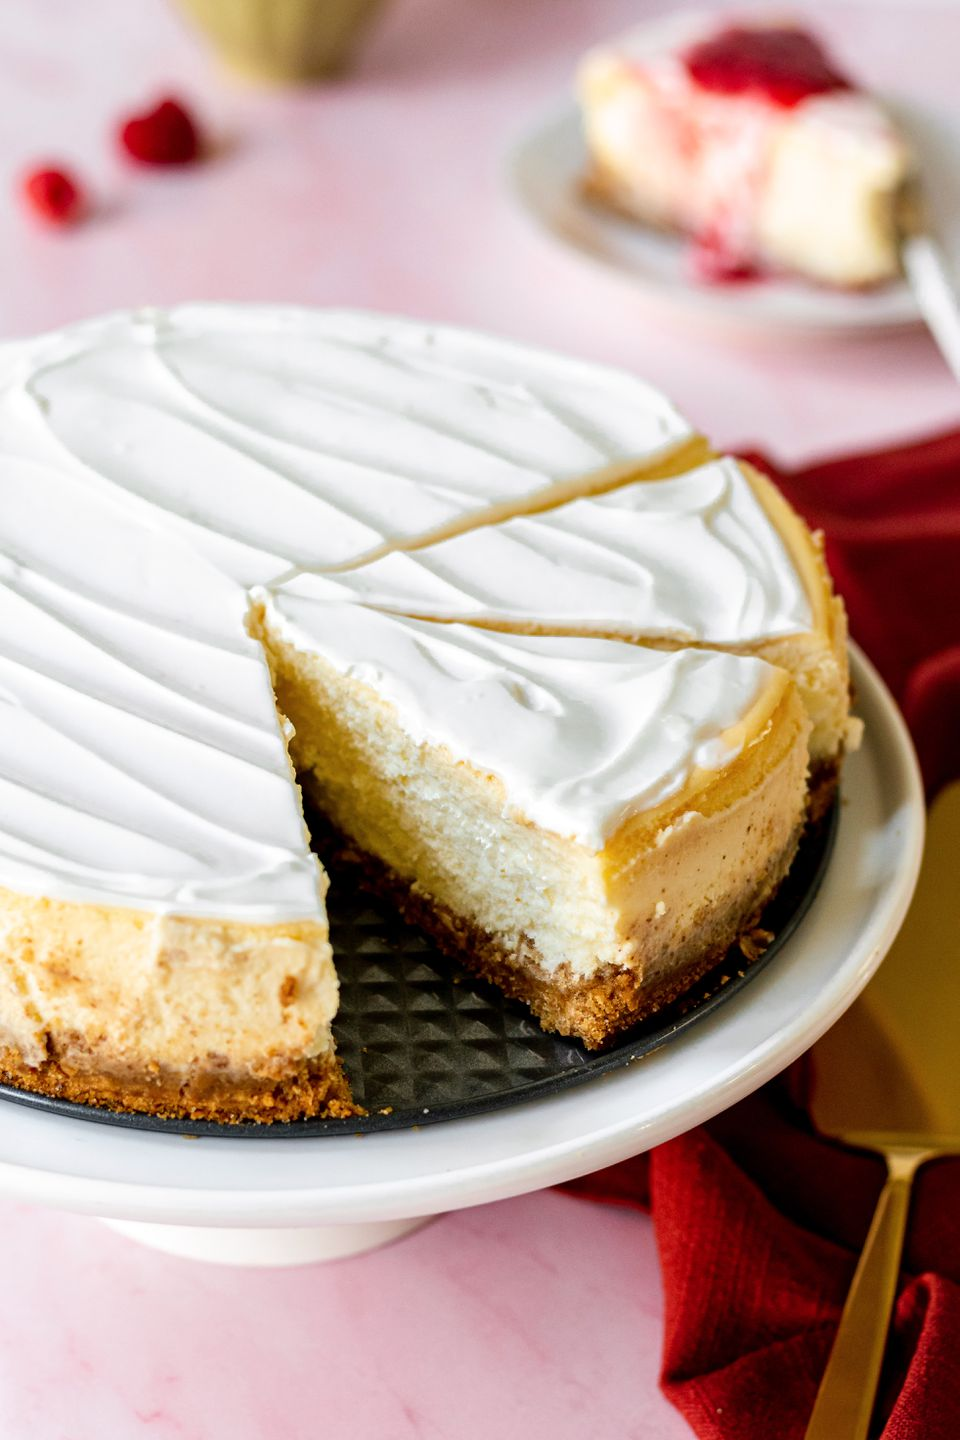 A cheesecake on a cake stand with a couple slices cut.